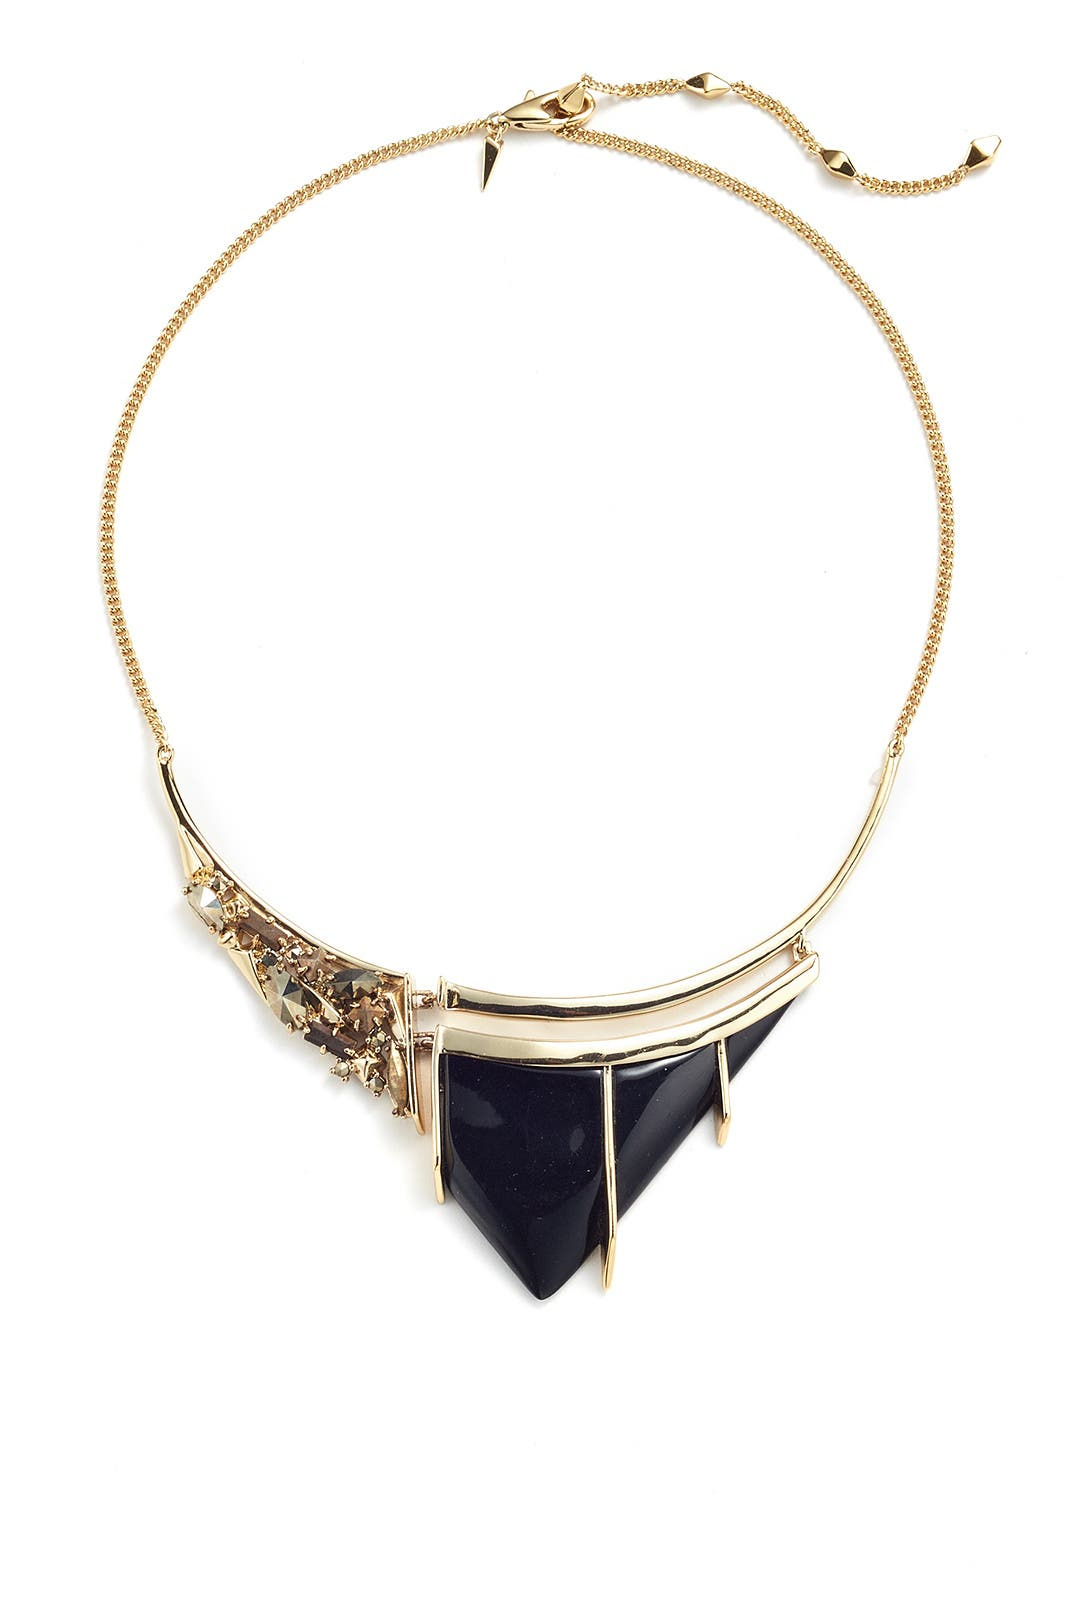 bittar silver by from pyrite tampa products quartz tresca cushion cropped side l necklace alexis image italia